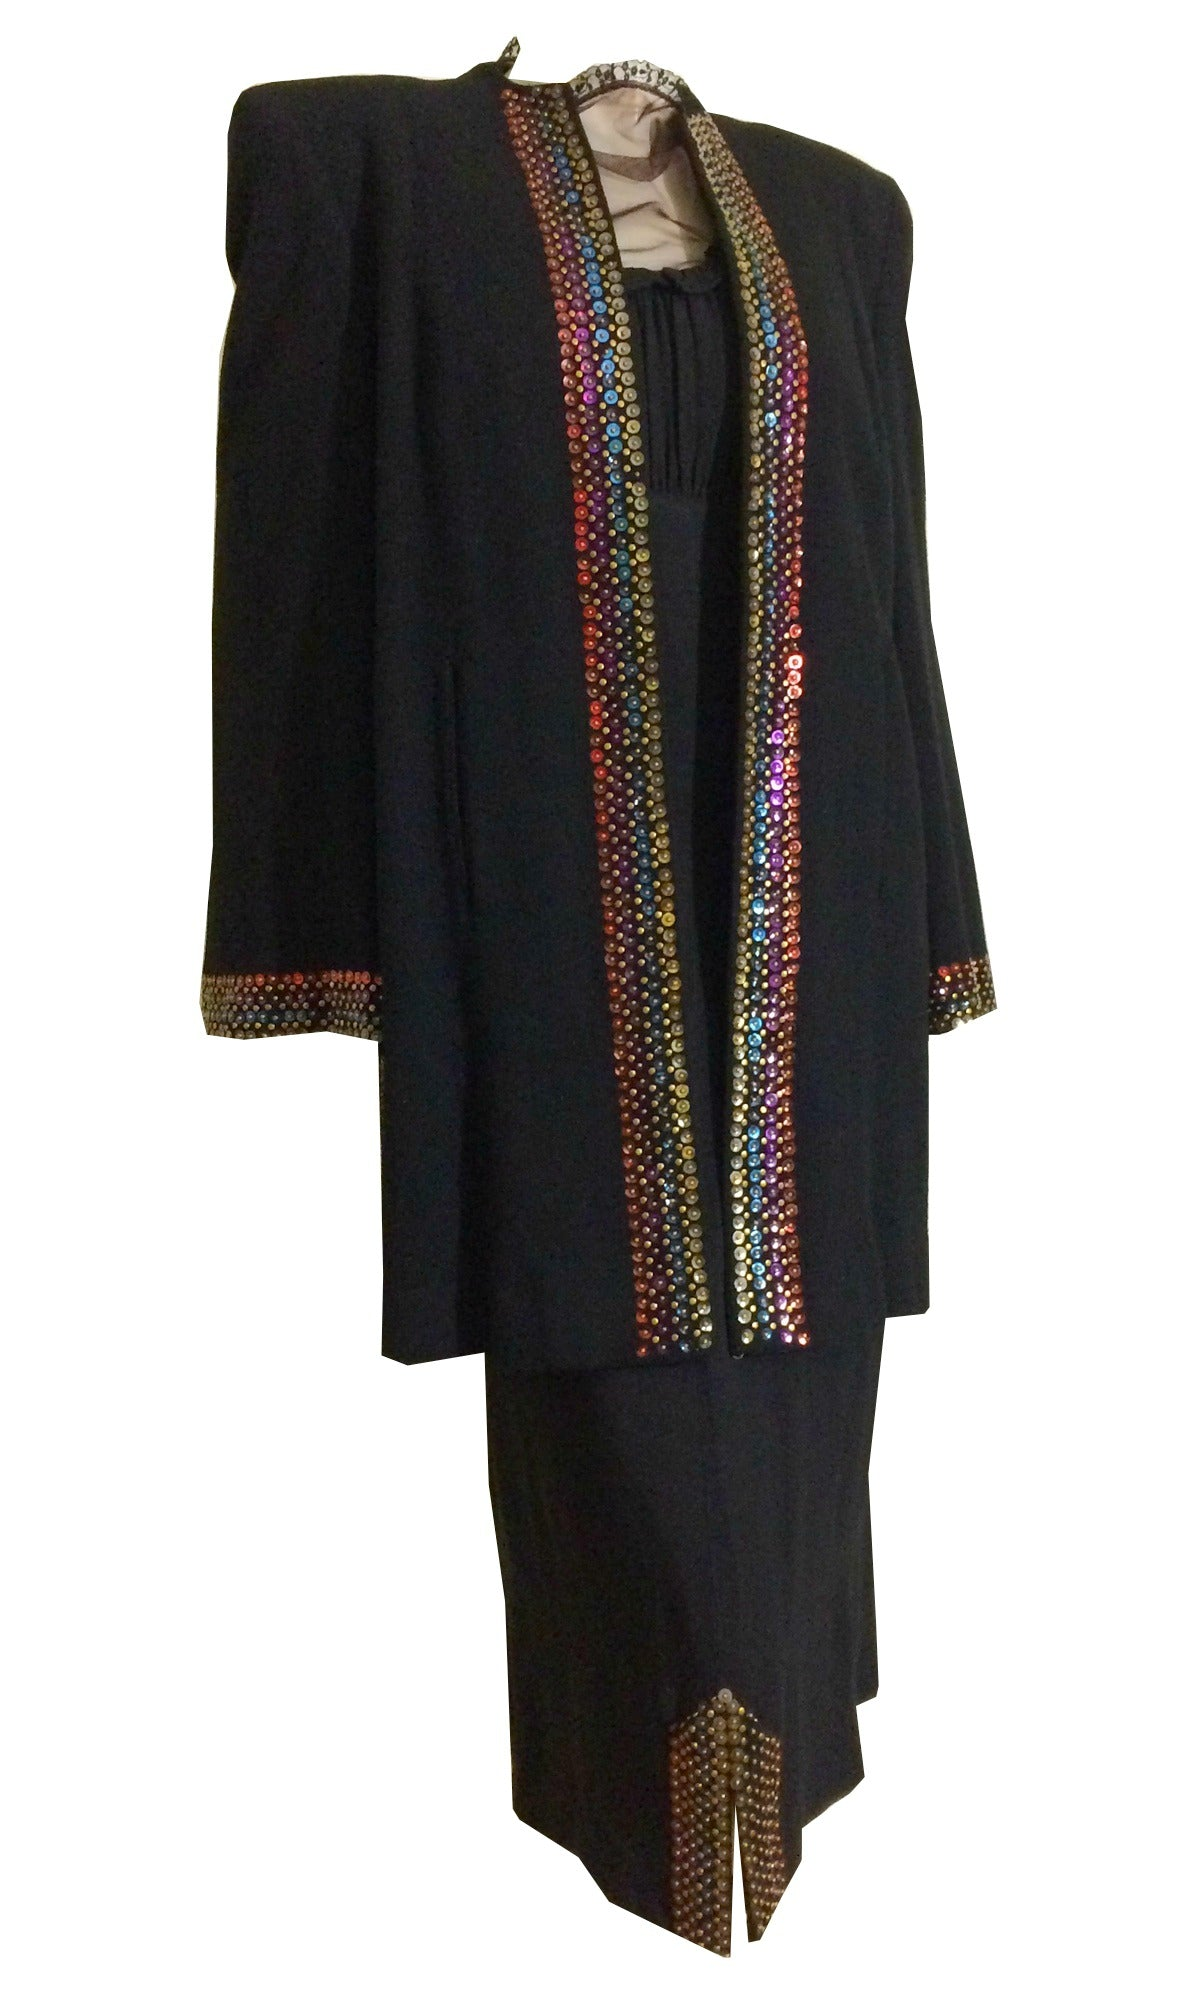 Sequin and Stud Edged Coat and Dress Set circa 1940s